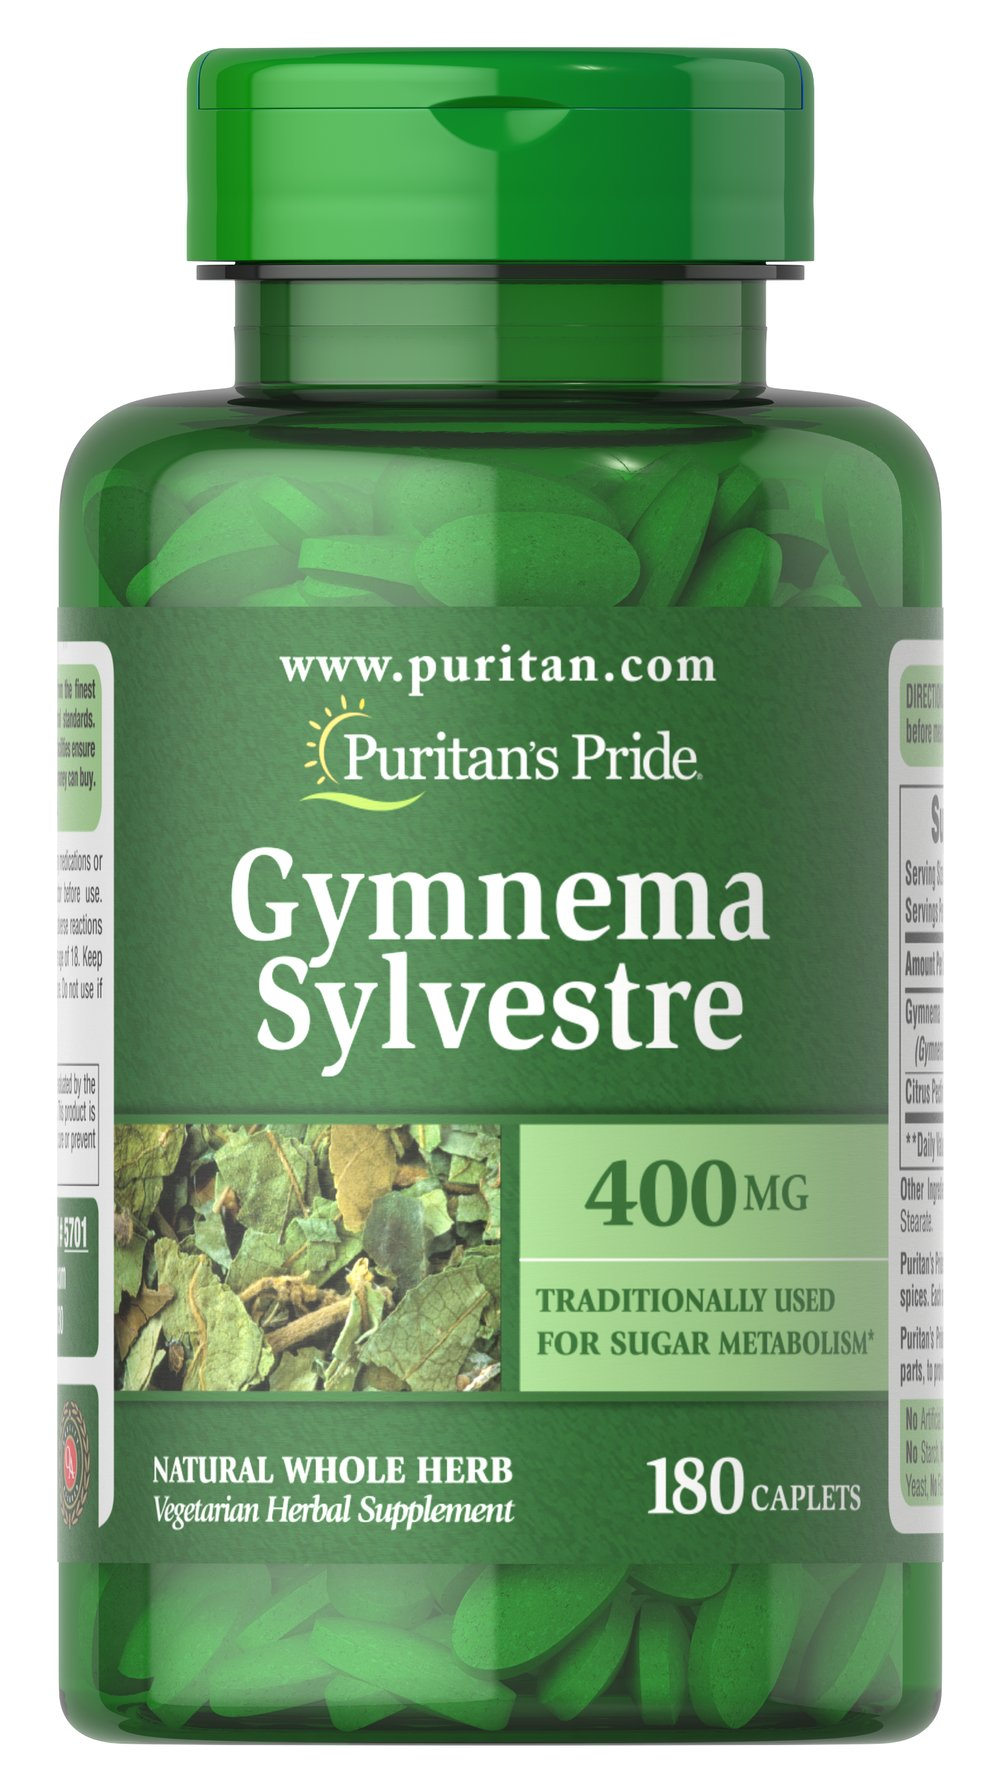 Gymnema Sylvestre 400 mg <p>Traditionally used for Sugar Metabolism**</p><p>Gymnema Sylvestre, an  ancient Ayurvedic herb, has been used in India for more than 2000 years  as a healthy and nutritious supplement. Gymnema Sylvestre supports  carbohydrate metabolism.** Available in (400 mg) tablets.</p><p>We only use the finest quality herbs and spices.  Each is screened and finely milled for quick release.</p>Puritan's Pride's Natural Whole Herb product